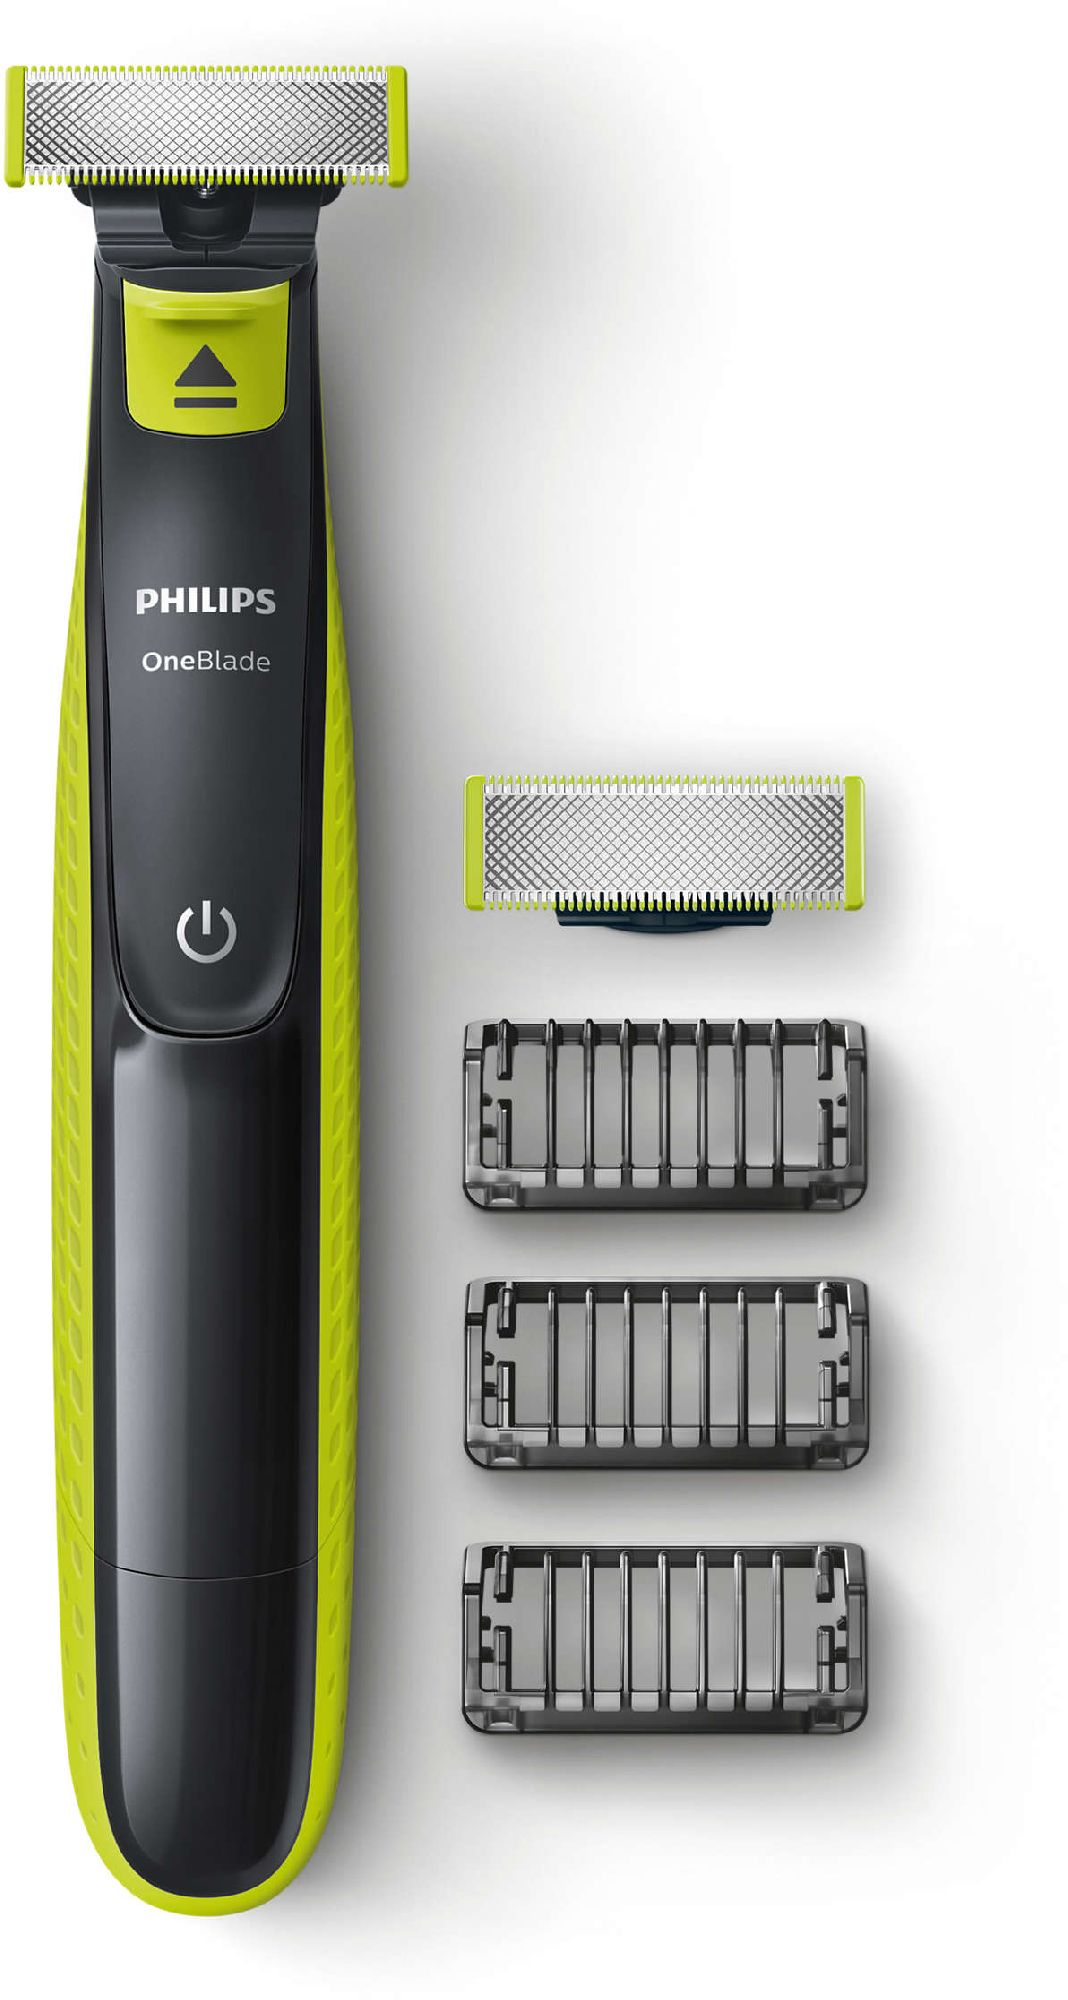 Philips Shaver QP2520/30  OneBlade Wet use, Rechargeable, Charging time 8 h, Ni-MH, Battery, Number of shaver heads/blades 2 replaceable bla matu, bārdas Trimmeris